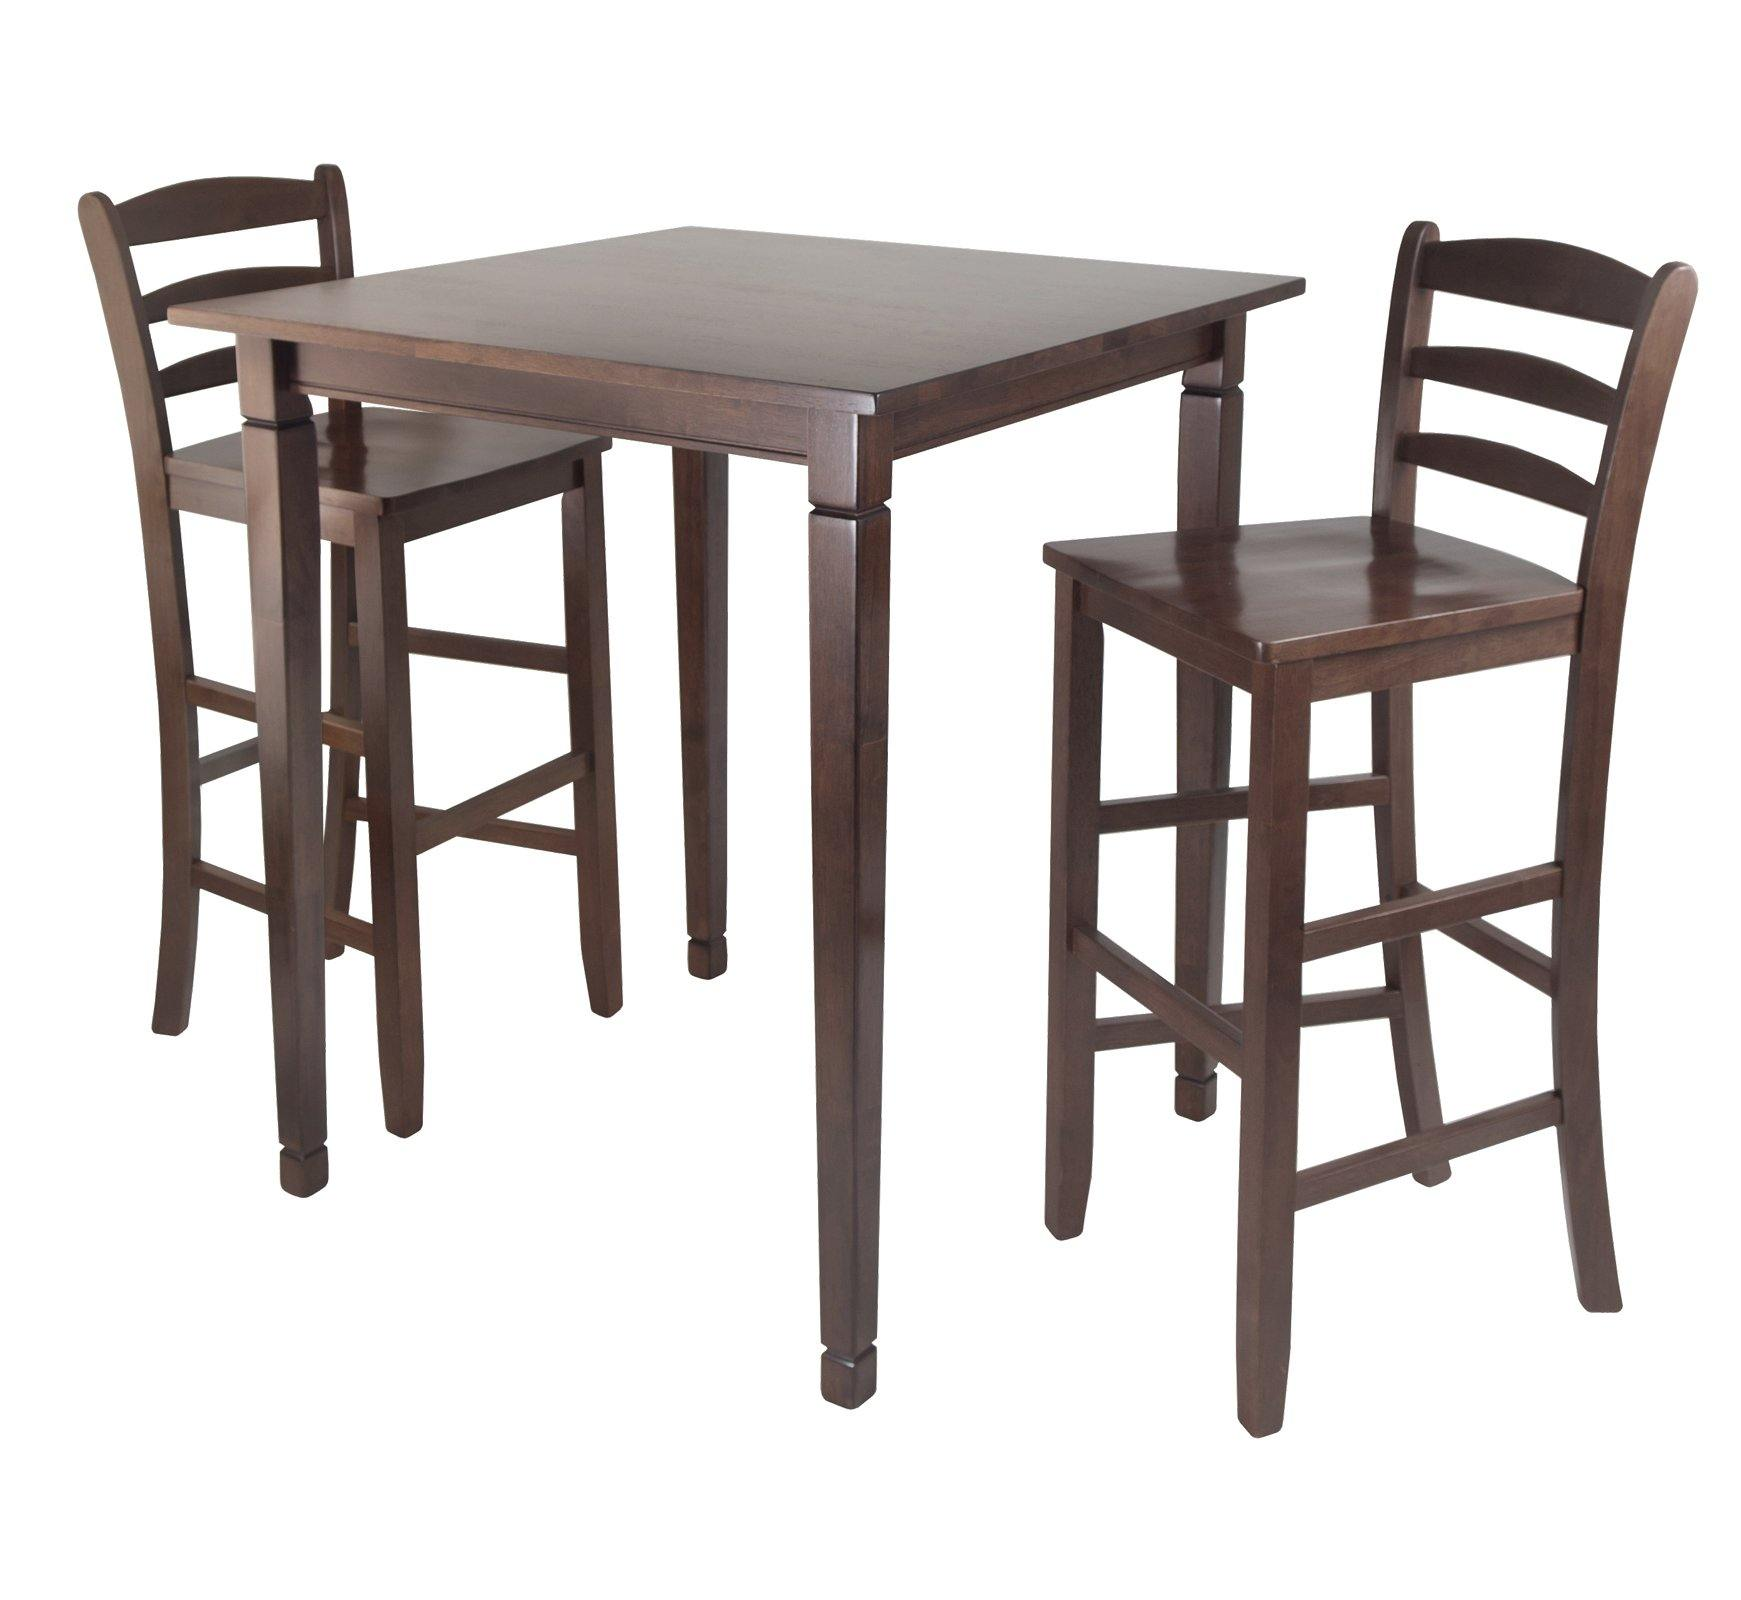 3-Pc Kingsgate High/Pub Dining Table with Ladder Back High Chair - My USA Furniture